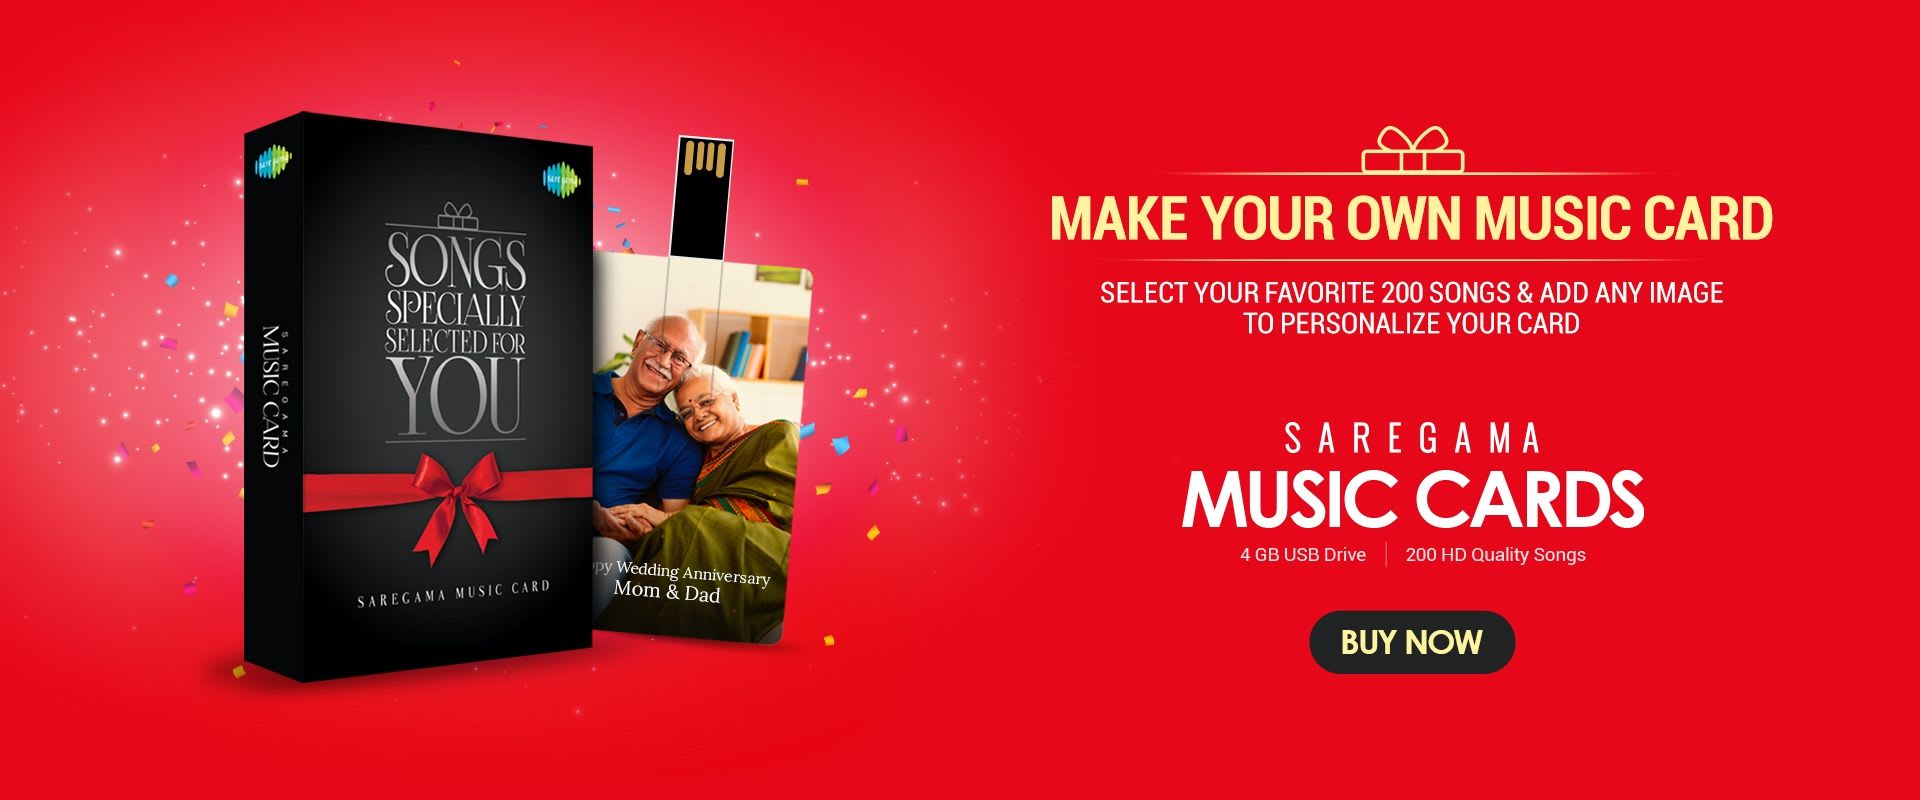 Purchase Music Cards